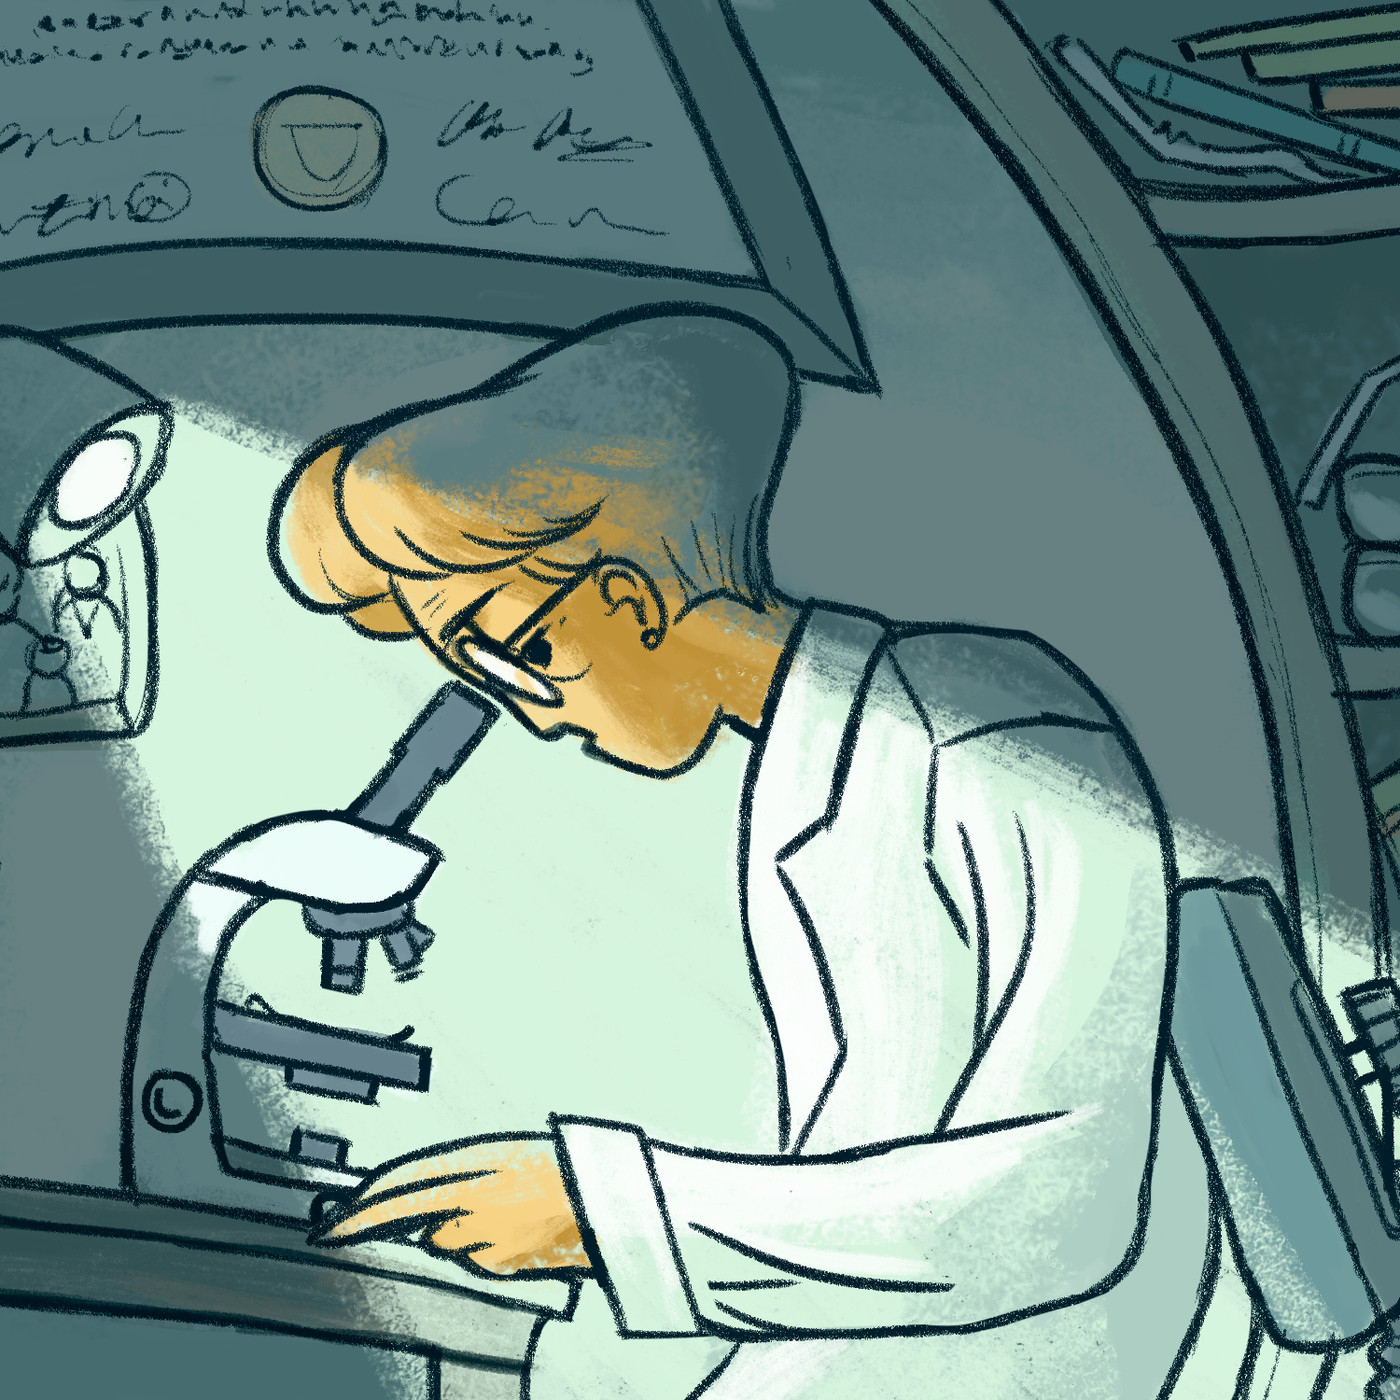 The 7 biggest problems facing science ...